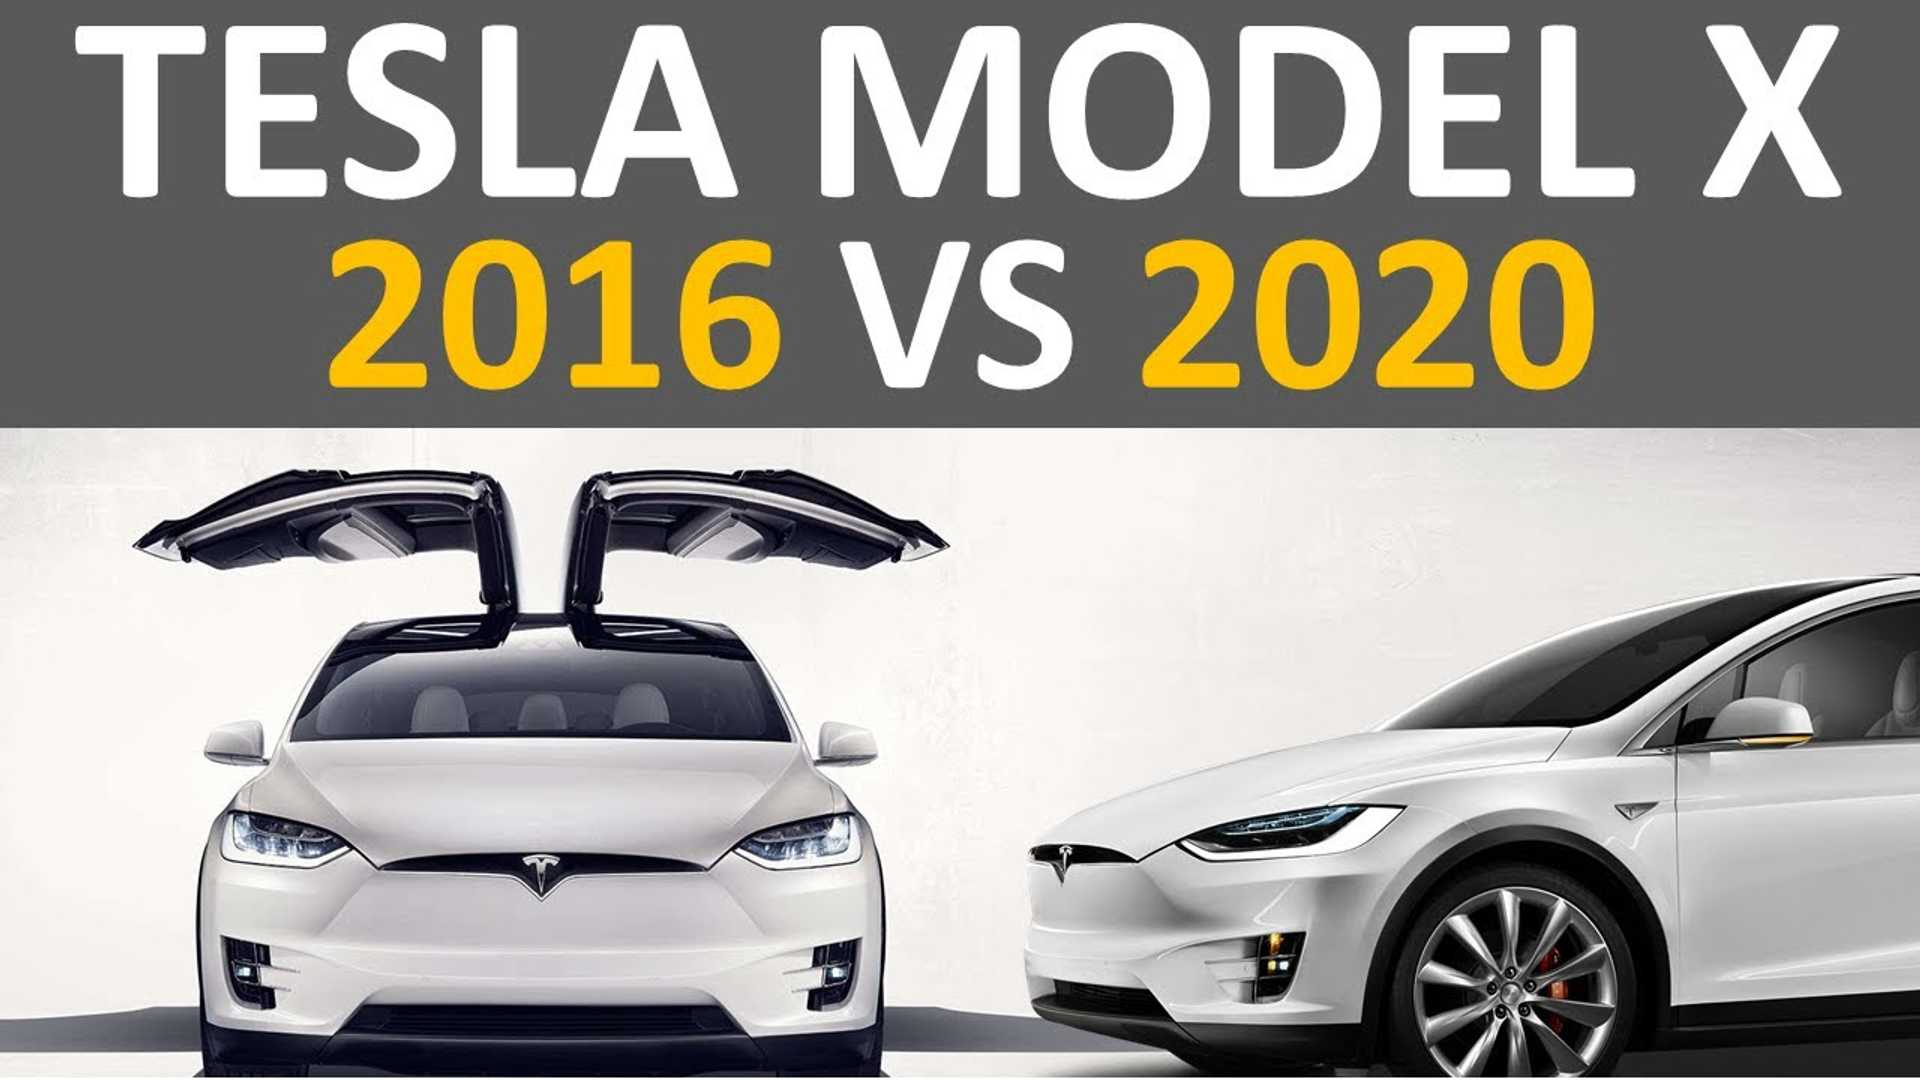 2016 Vs 2020 Tesla Model X Whats Improved Changes Charted 1920x1080